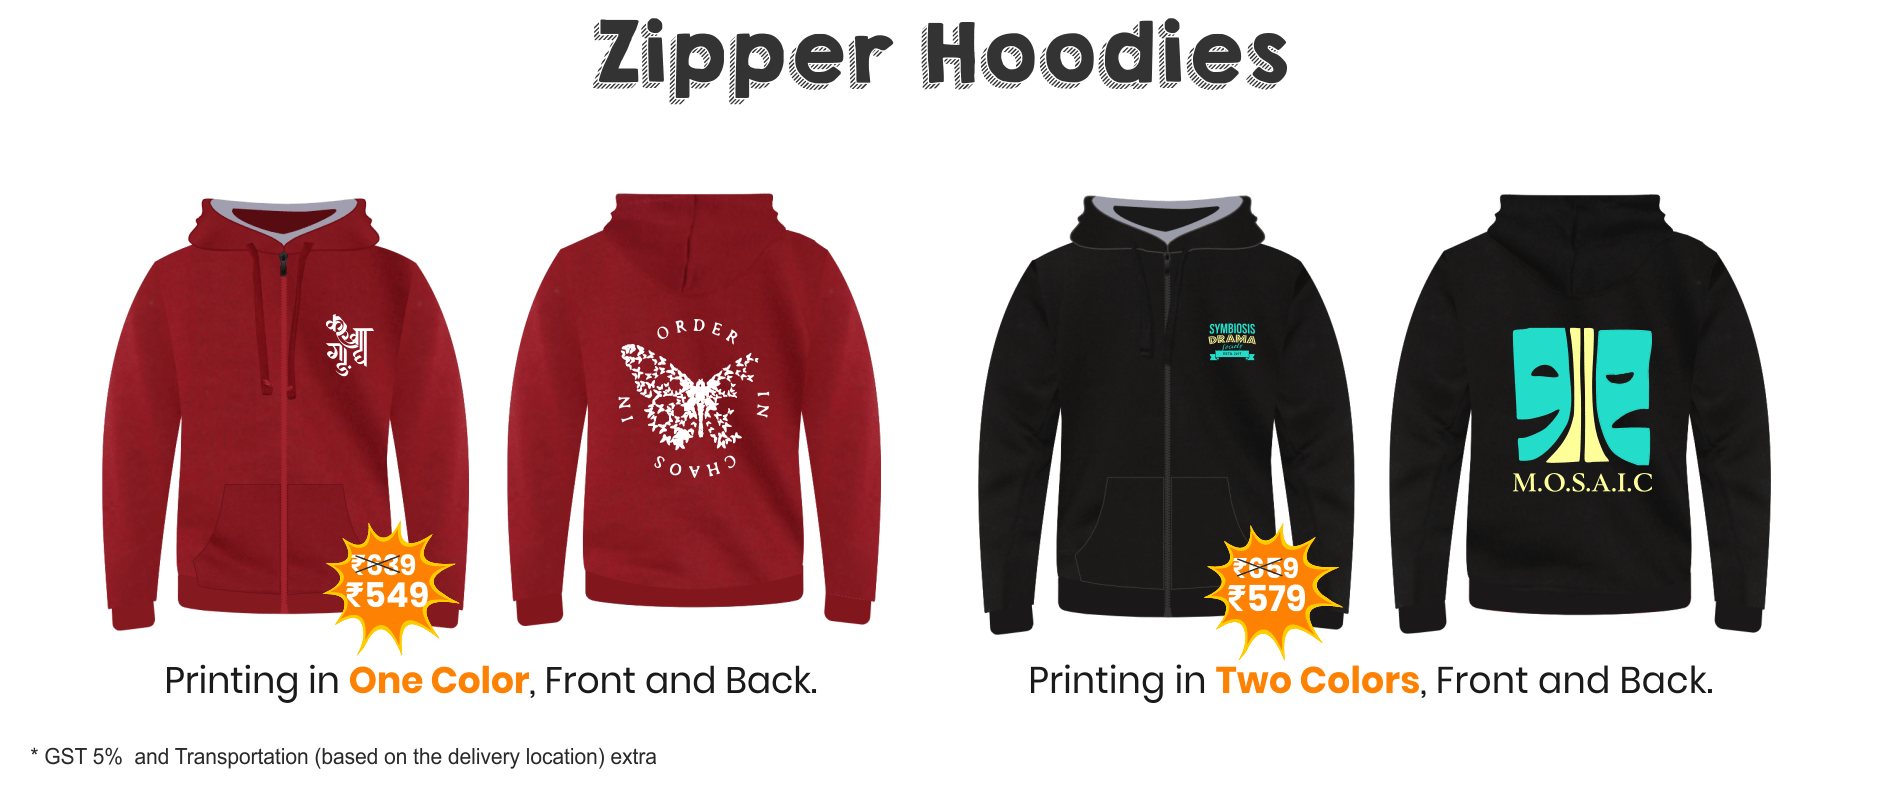 Pricing for Zipper Hoodies for Fest